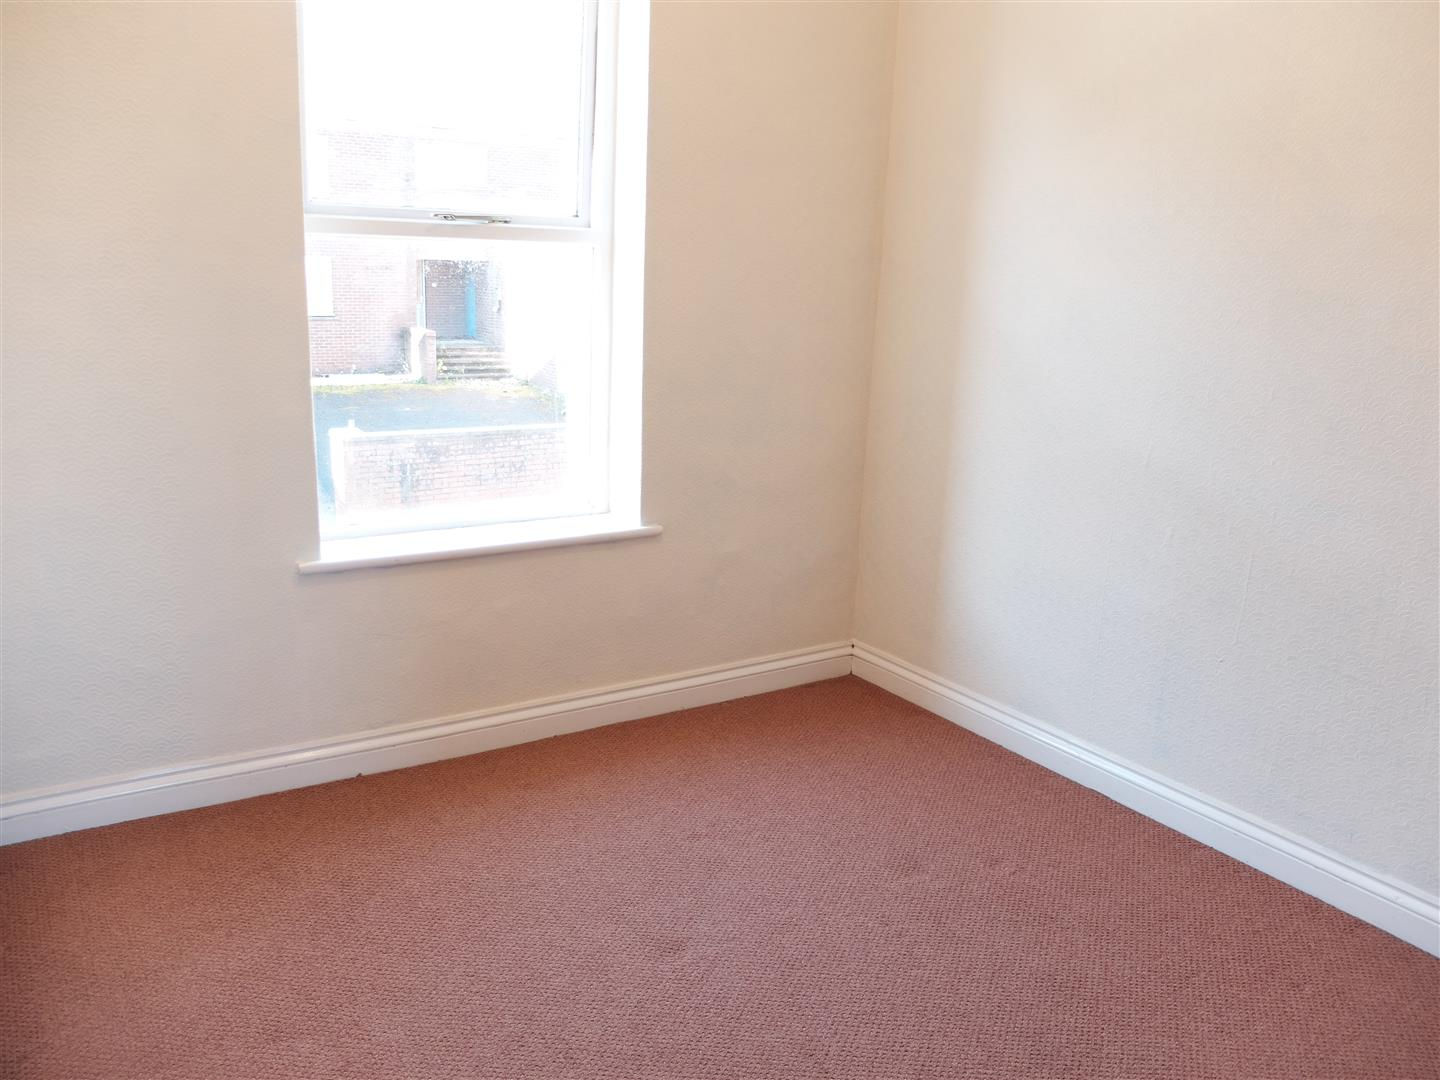 2 Bedrooms House - Terraced For Sale 5 Silloth Street Carlisle 70,000